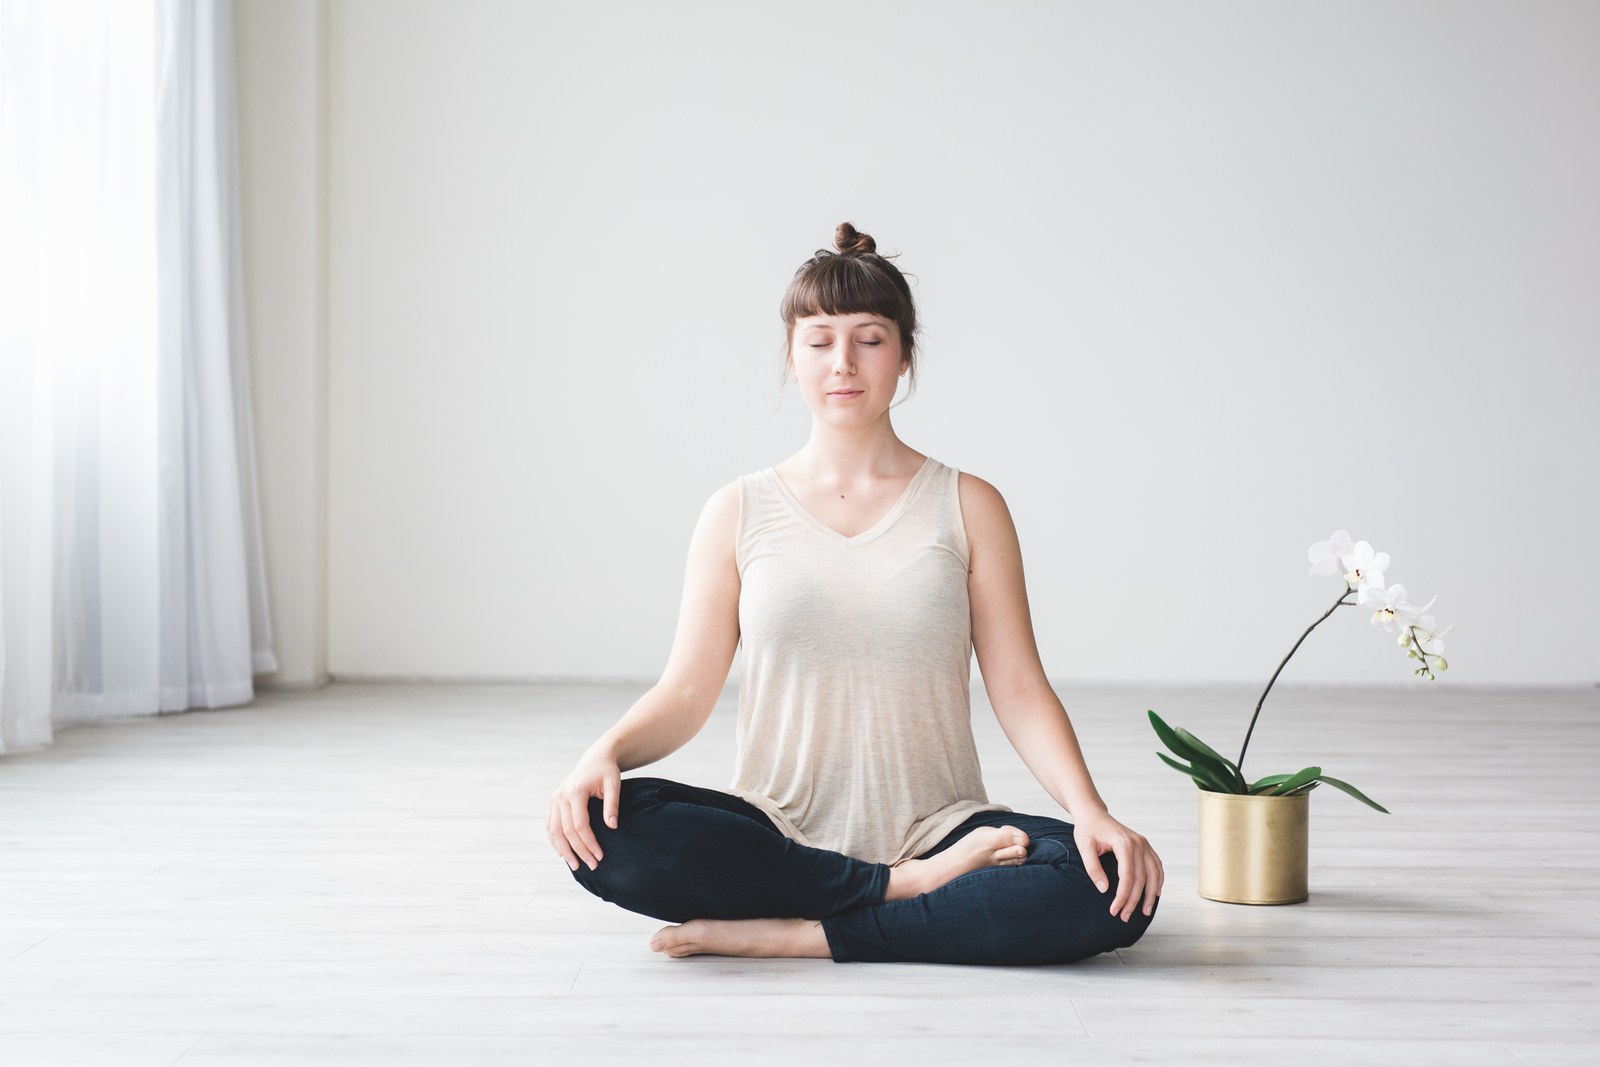 Meditation healthy mindset